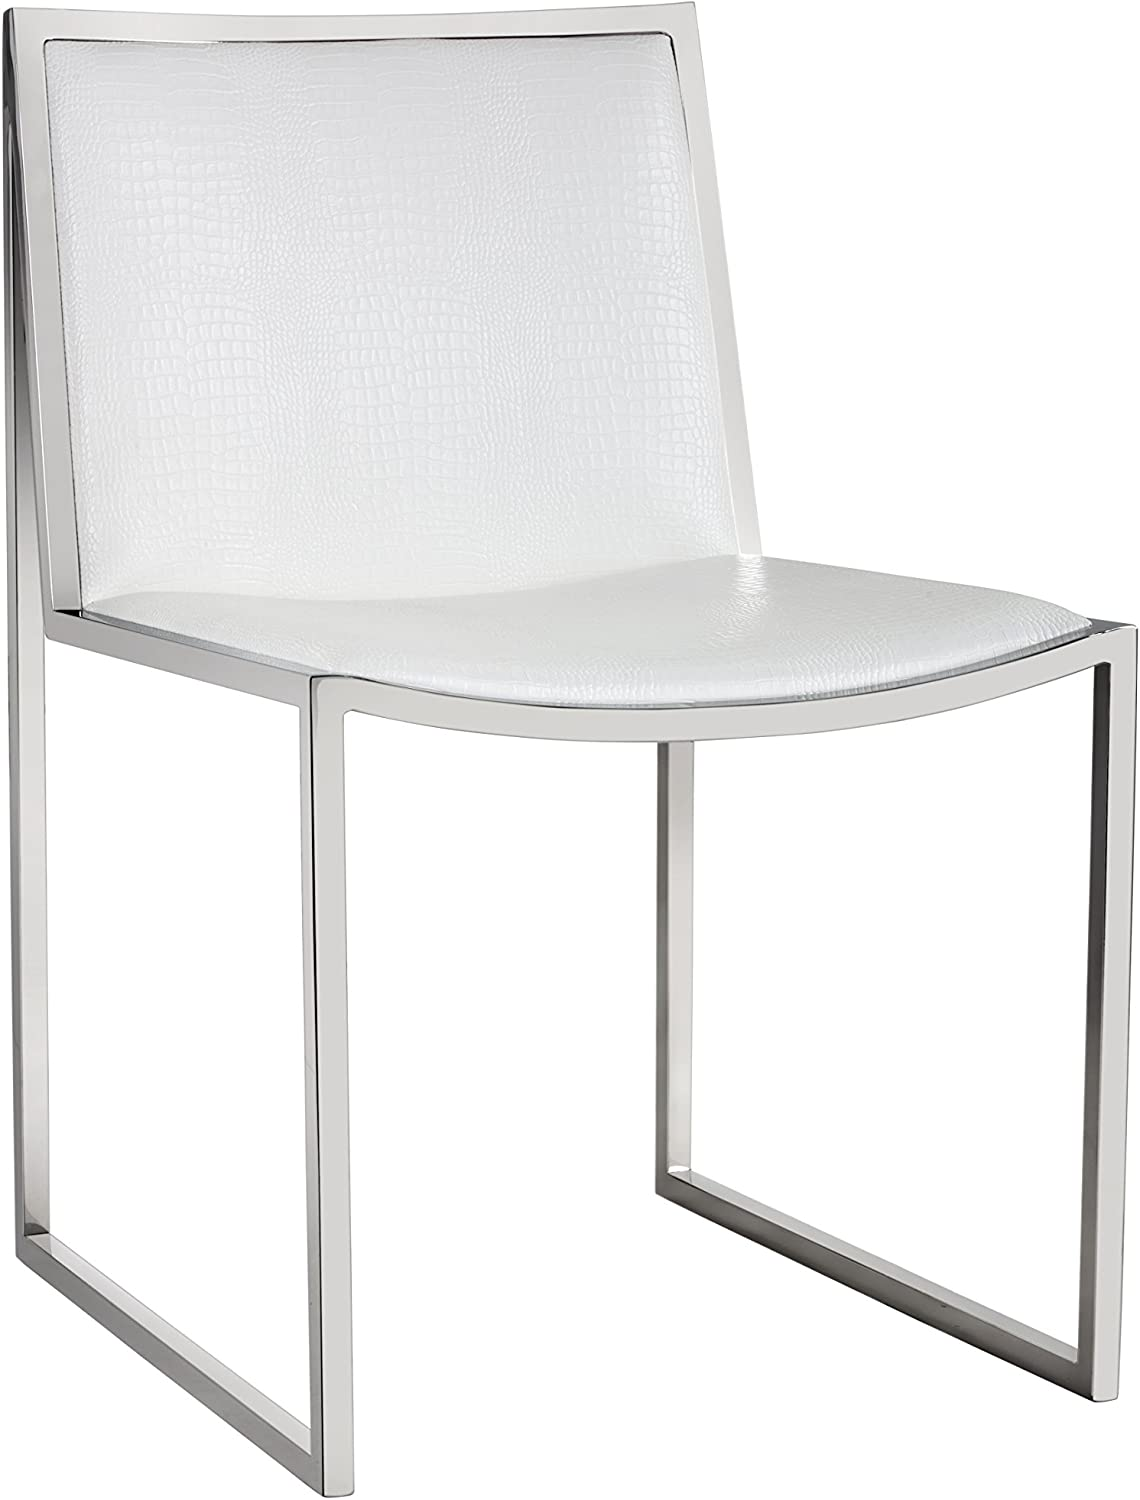 Amazon Com Sunpan Modern Blair Dining Chair In White Croc Leatherette Set Of 2 Chairs